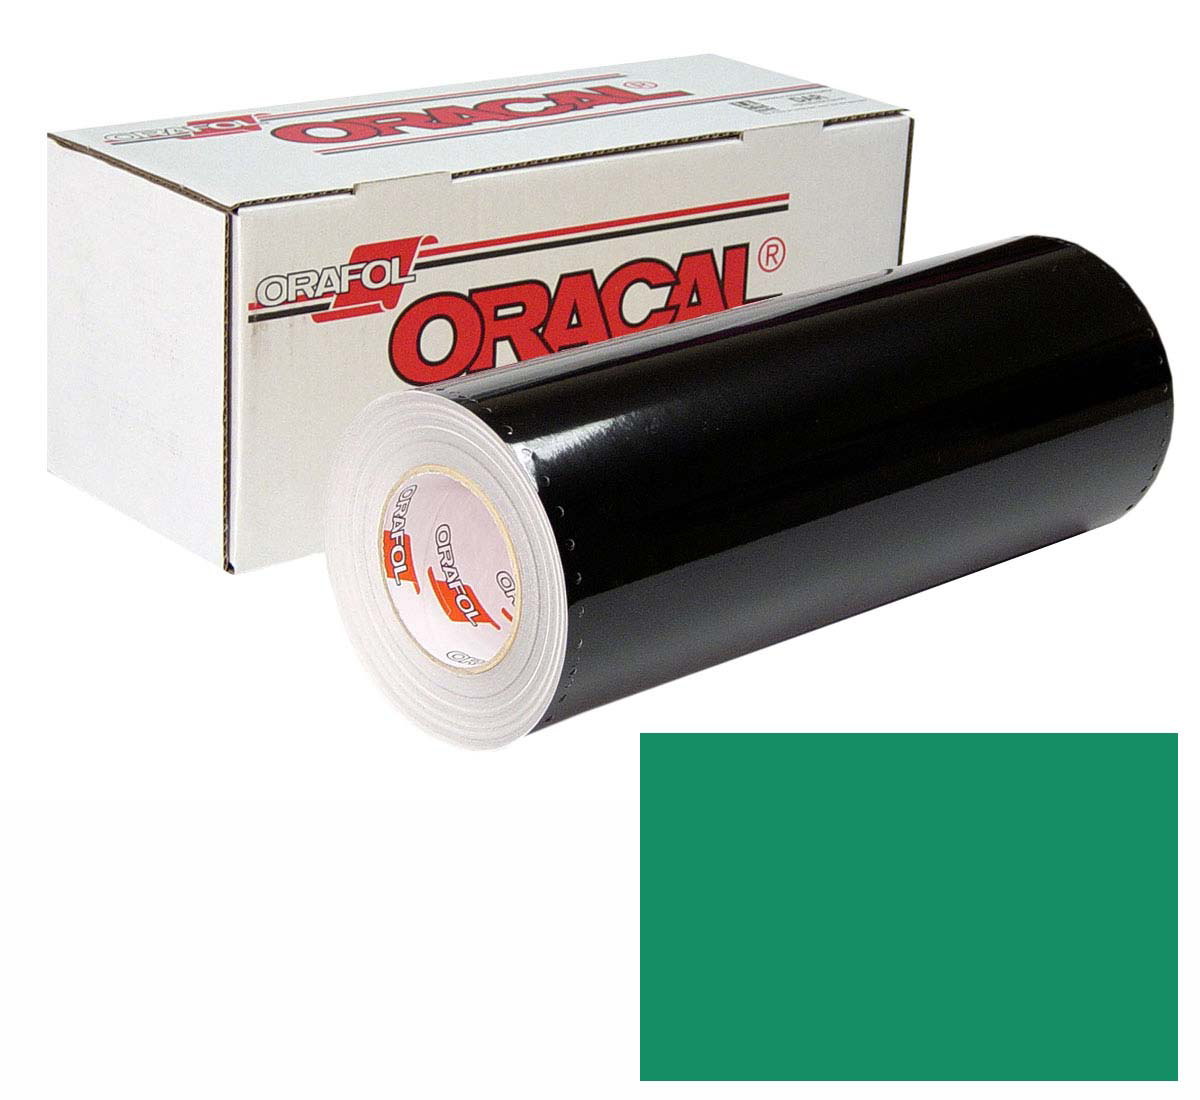 ORACAL 641 15In X 50Yd 068 Grass Green